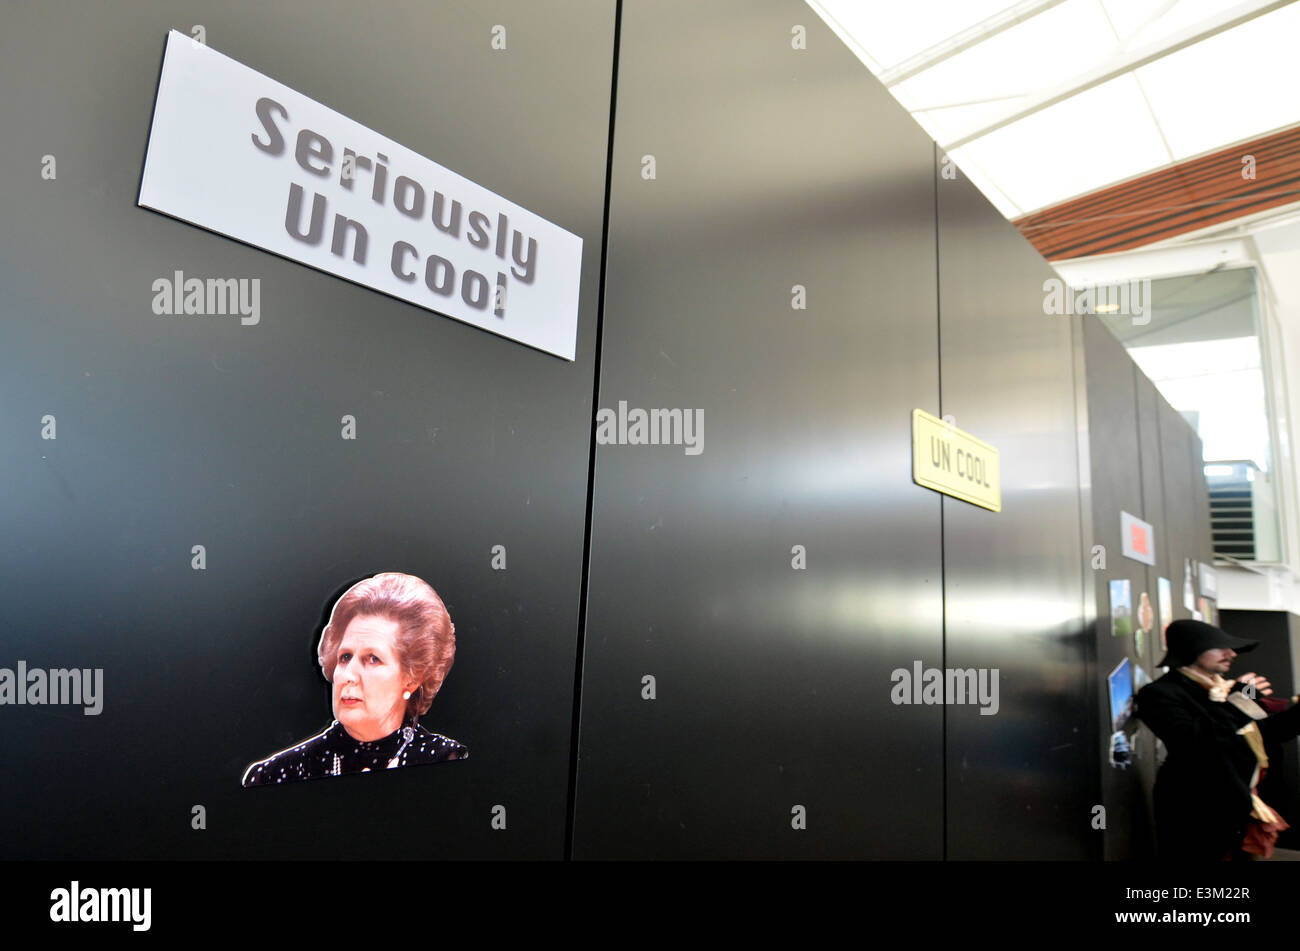 AUCKLAND - JUNE 01 2014:Margaret Thatcher photo on the wall of shame during Queens birthday in Auckland, New Zealand. - Stock Image